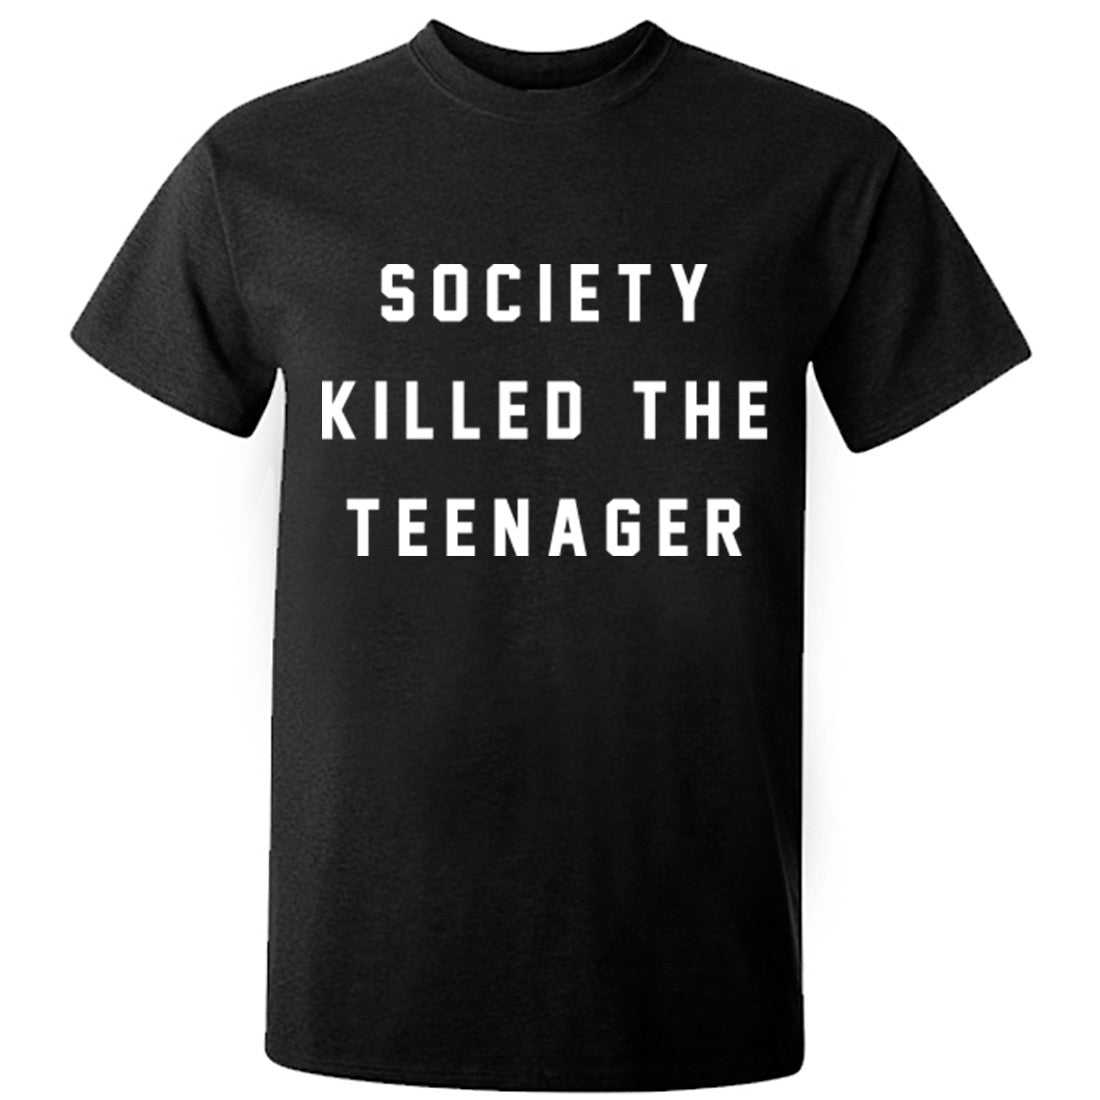 Society killed the teenager unisex t-shirt K0228